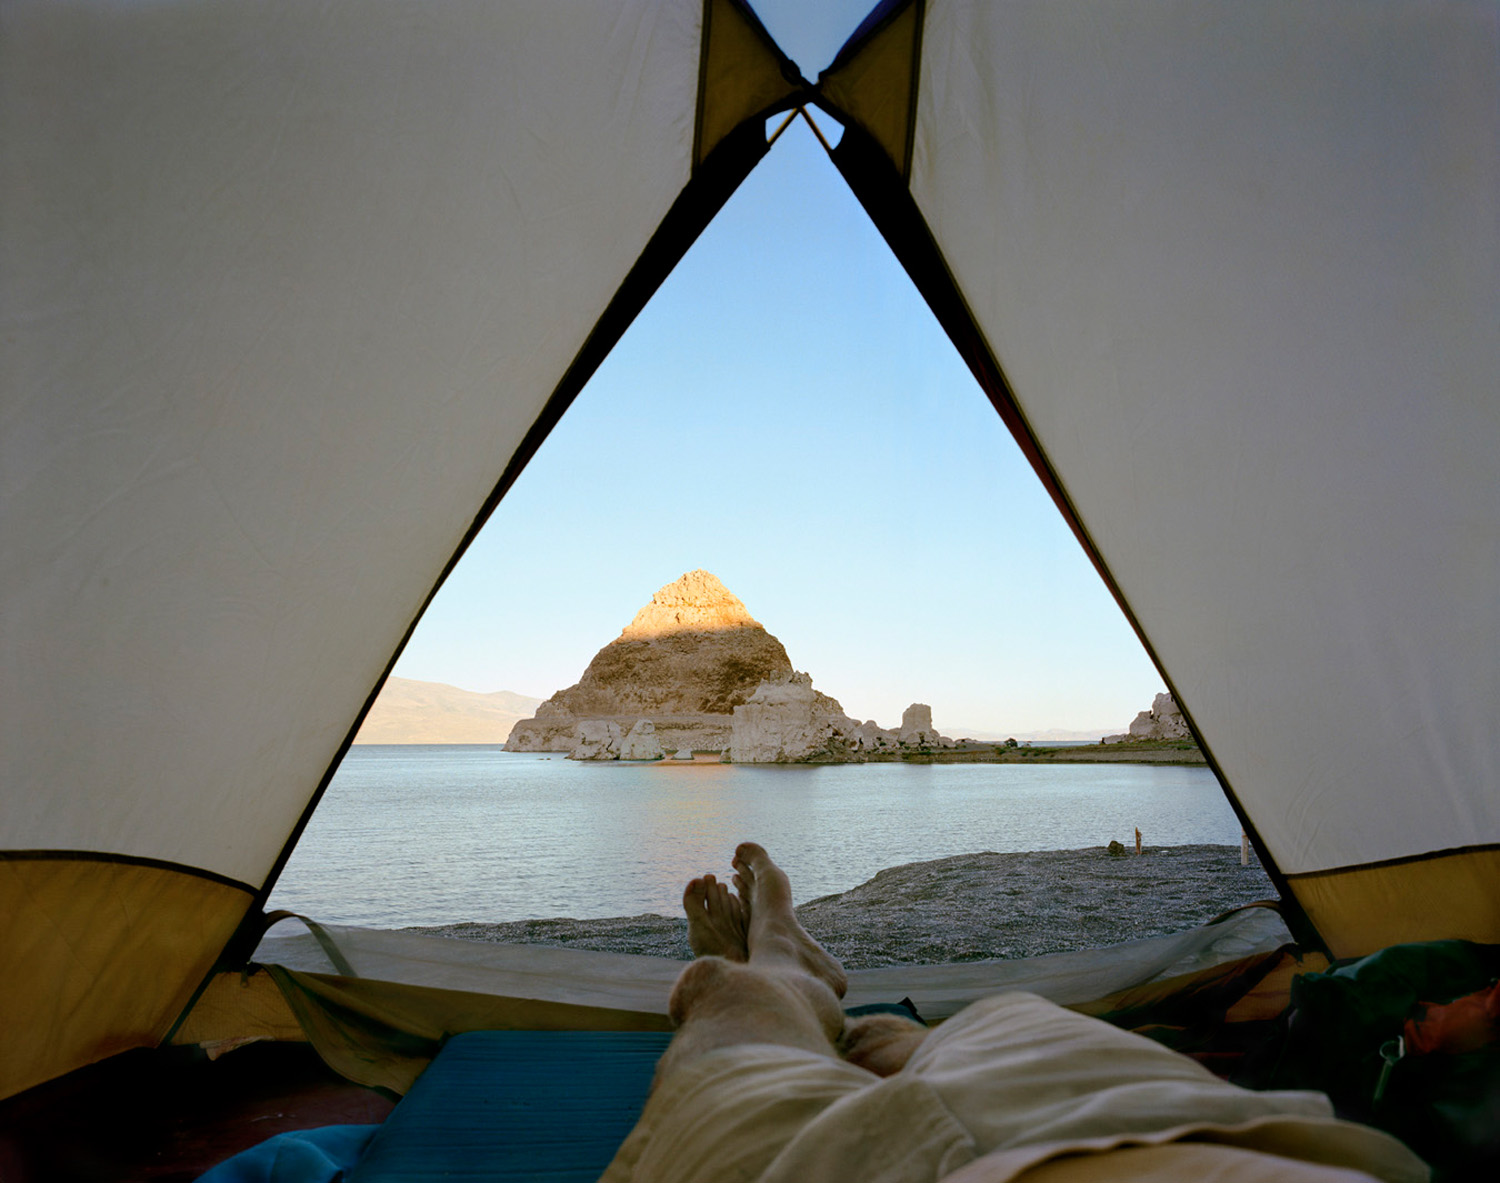 Pyramid and tent.jpg